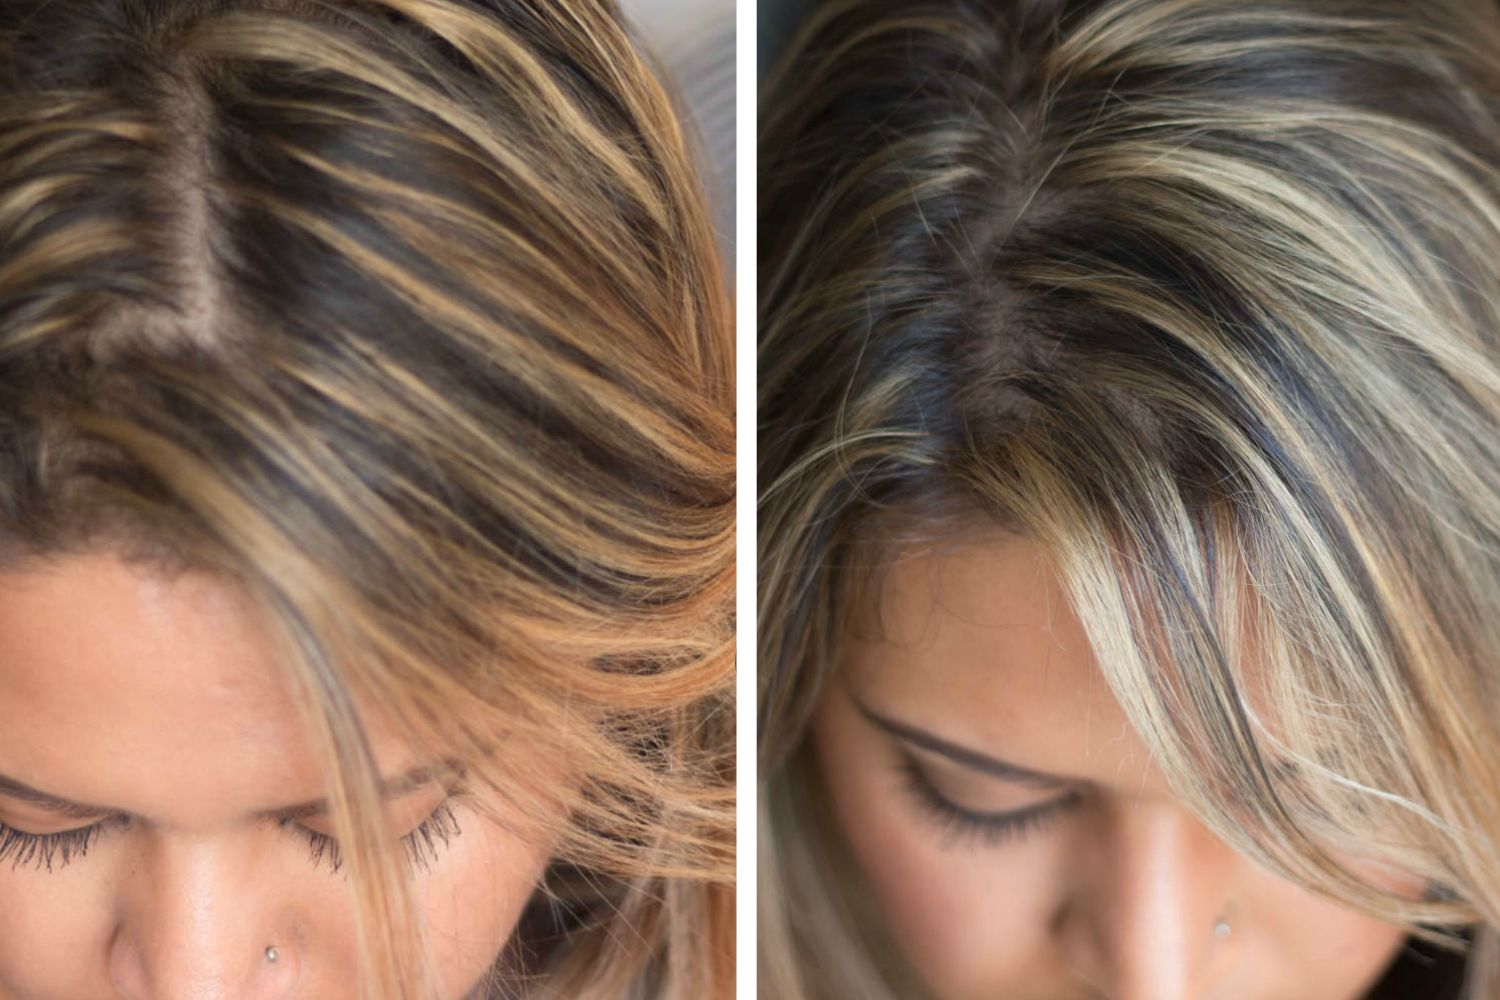 How To Tone Brassy Hair At Home Wella T14 And Wella T18 Toner For Blonde Hair Brassy Blonde Hair Blonde Hair At Home